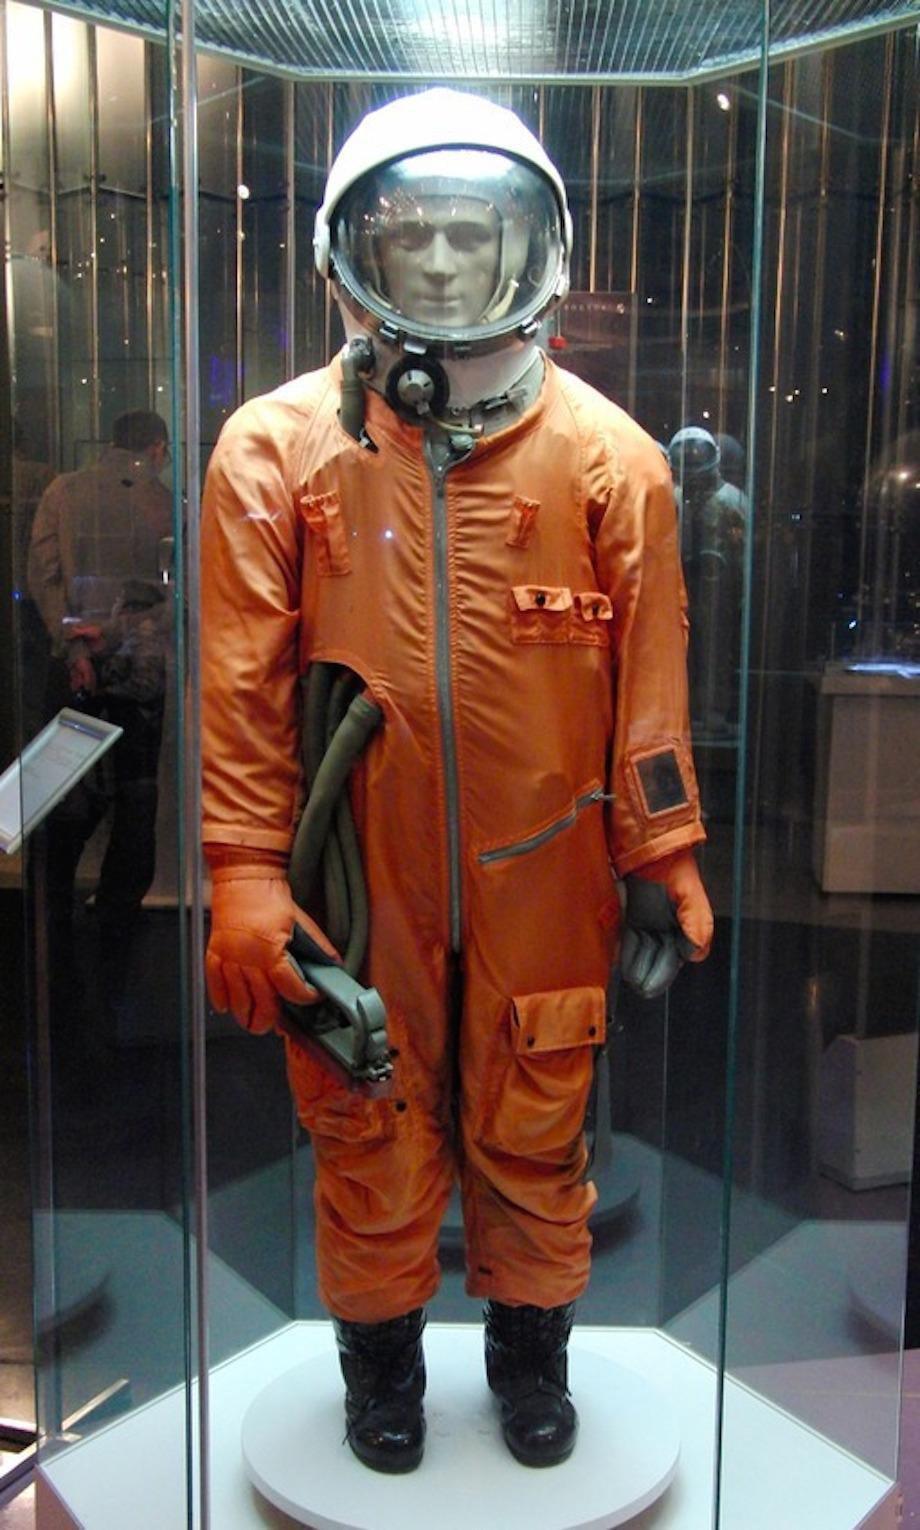 check-out-the-evolution-of-the-space-suit-41-hq-photos-9